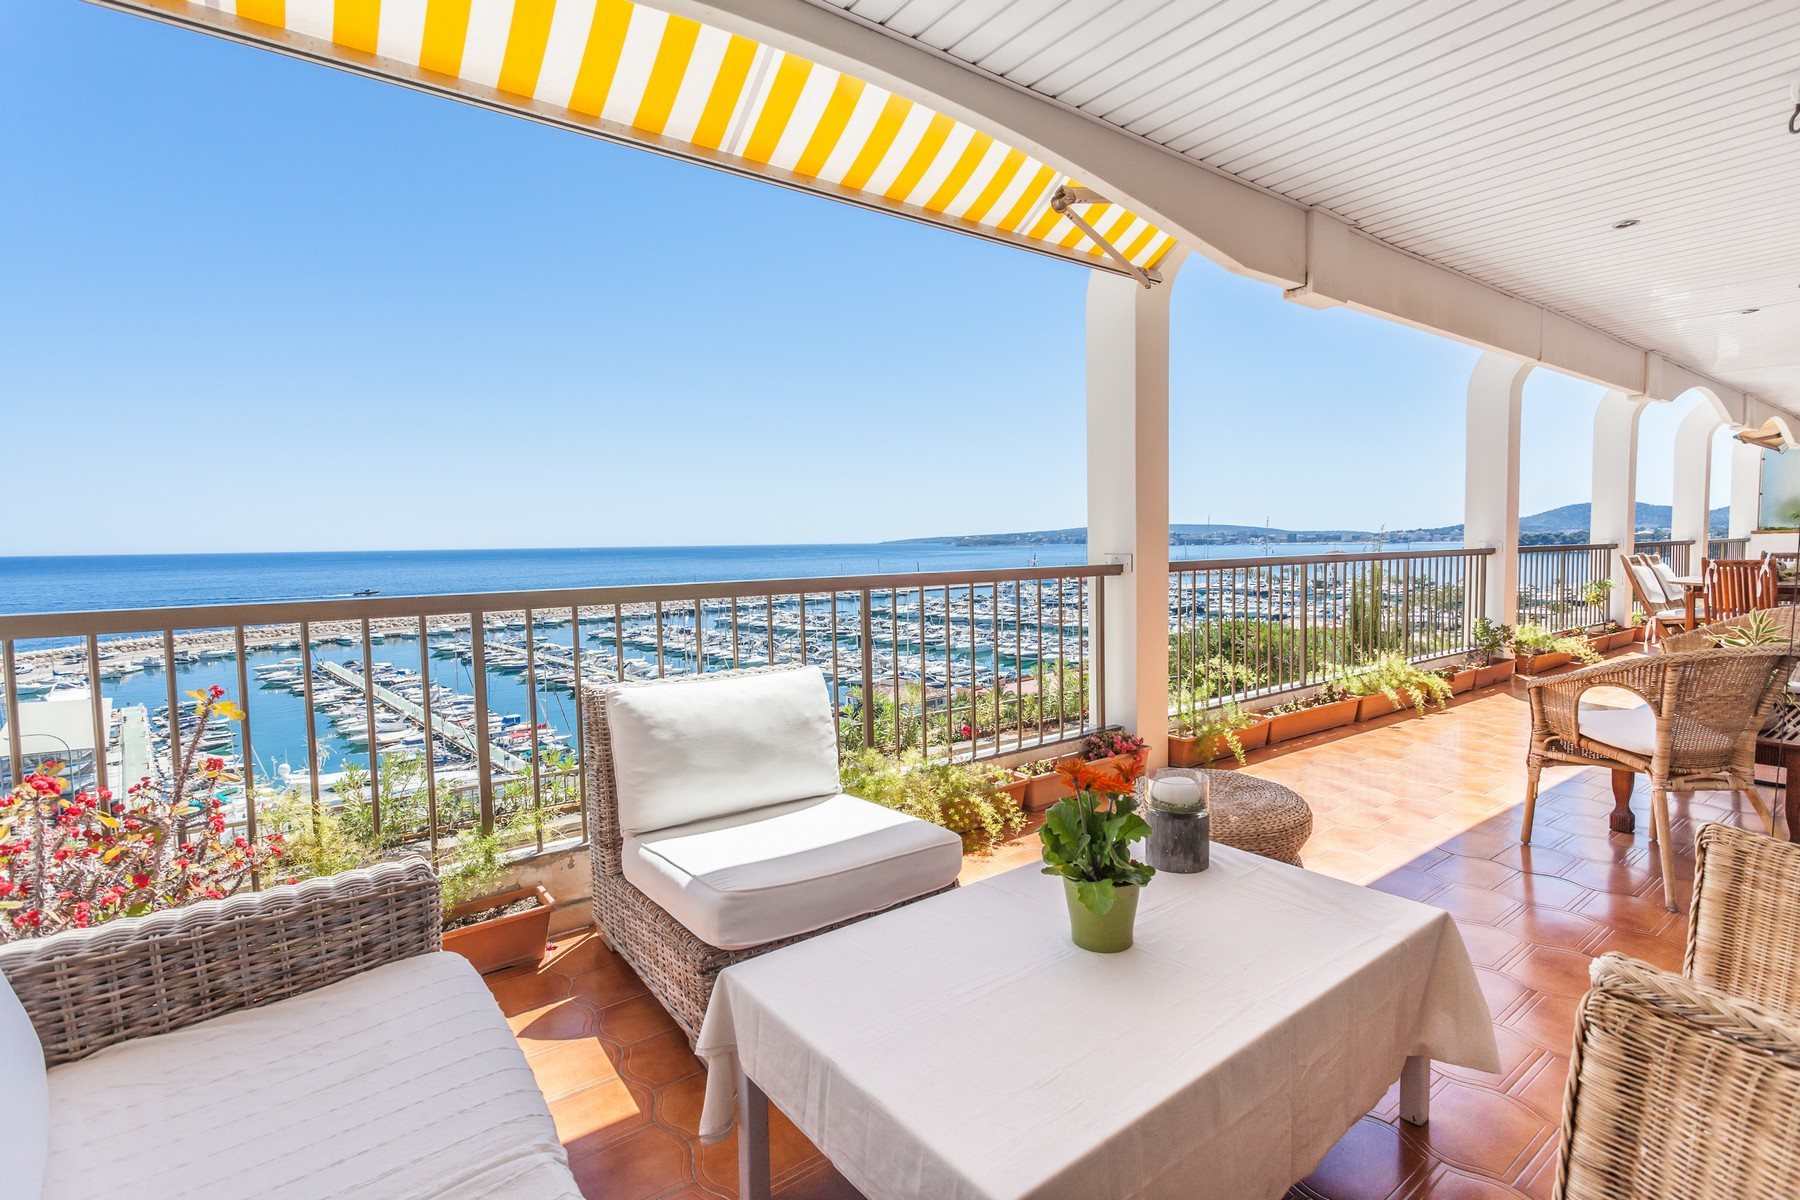 Apartment for Sale at Luxury apartment overlooking Puerto Portals Marina Portals, Mallorca, 07181 Spain